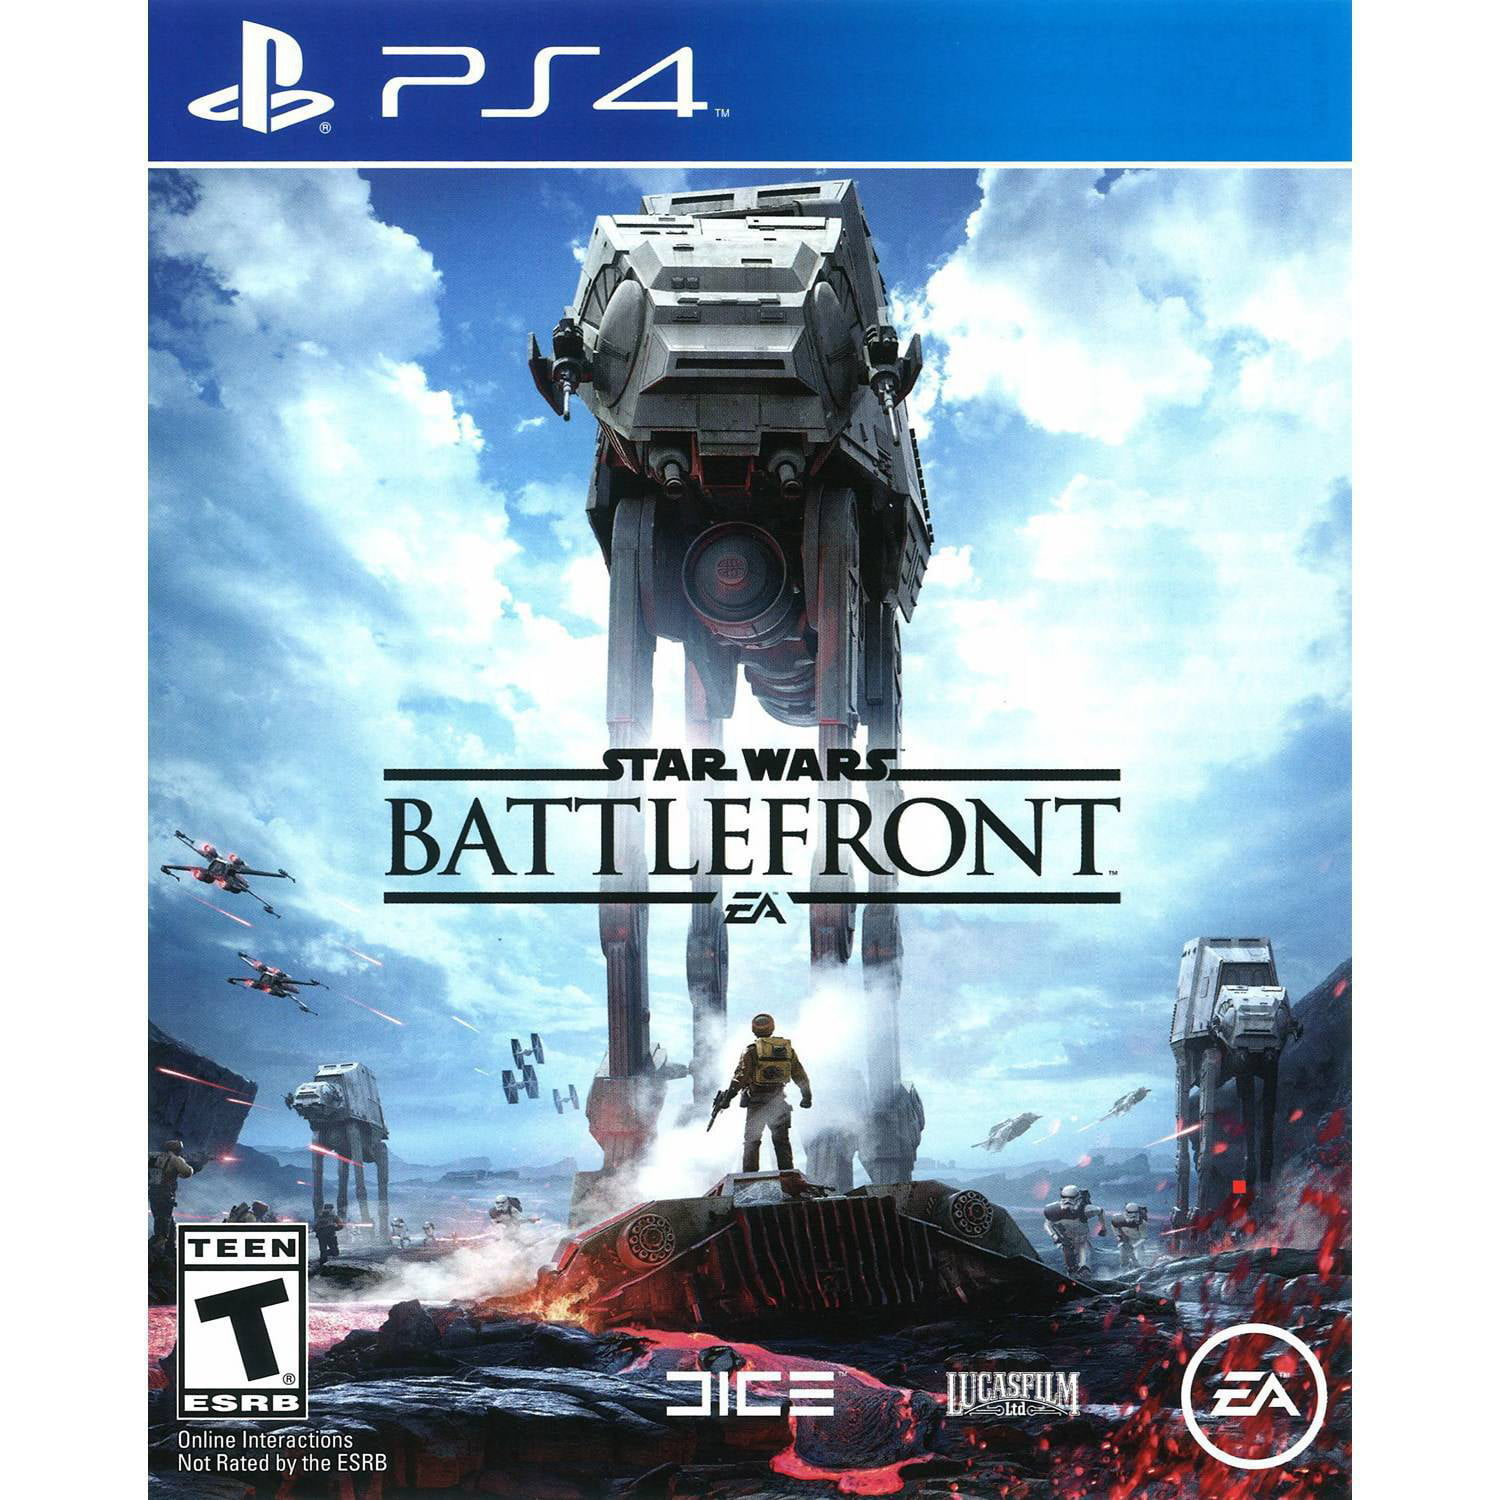 Star Wars Battlefront for PlayStation 4 by EA Digital Illusions Creative Entertainment AB (DICE)